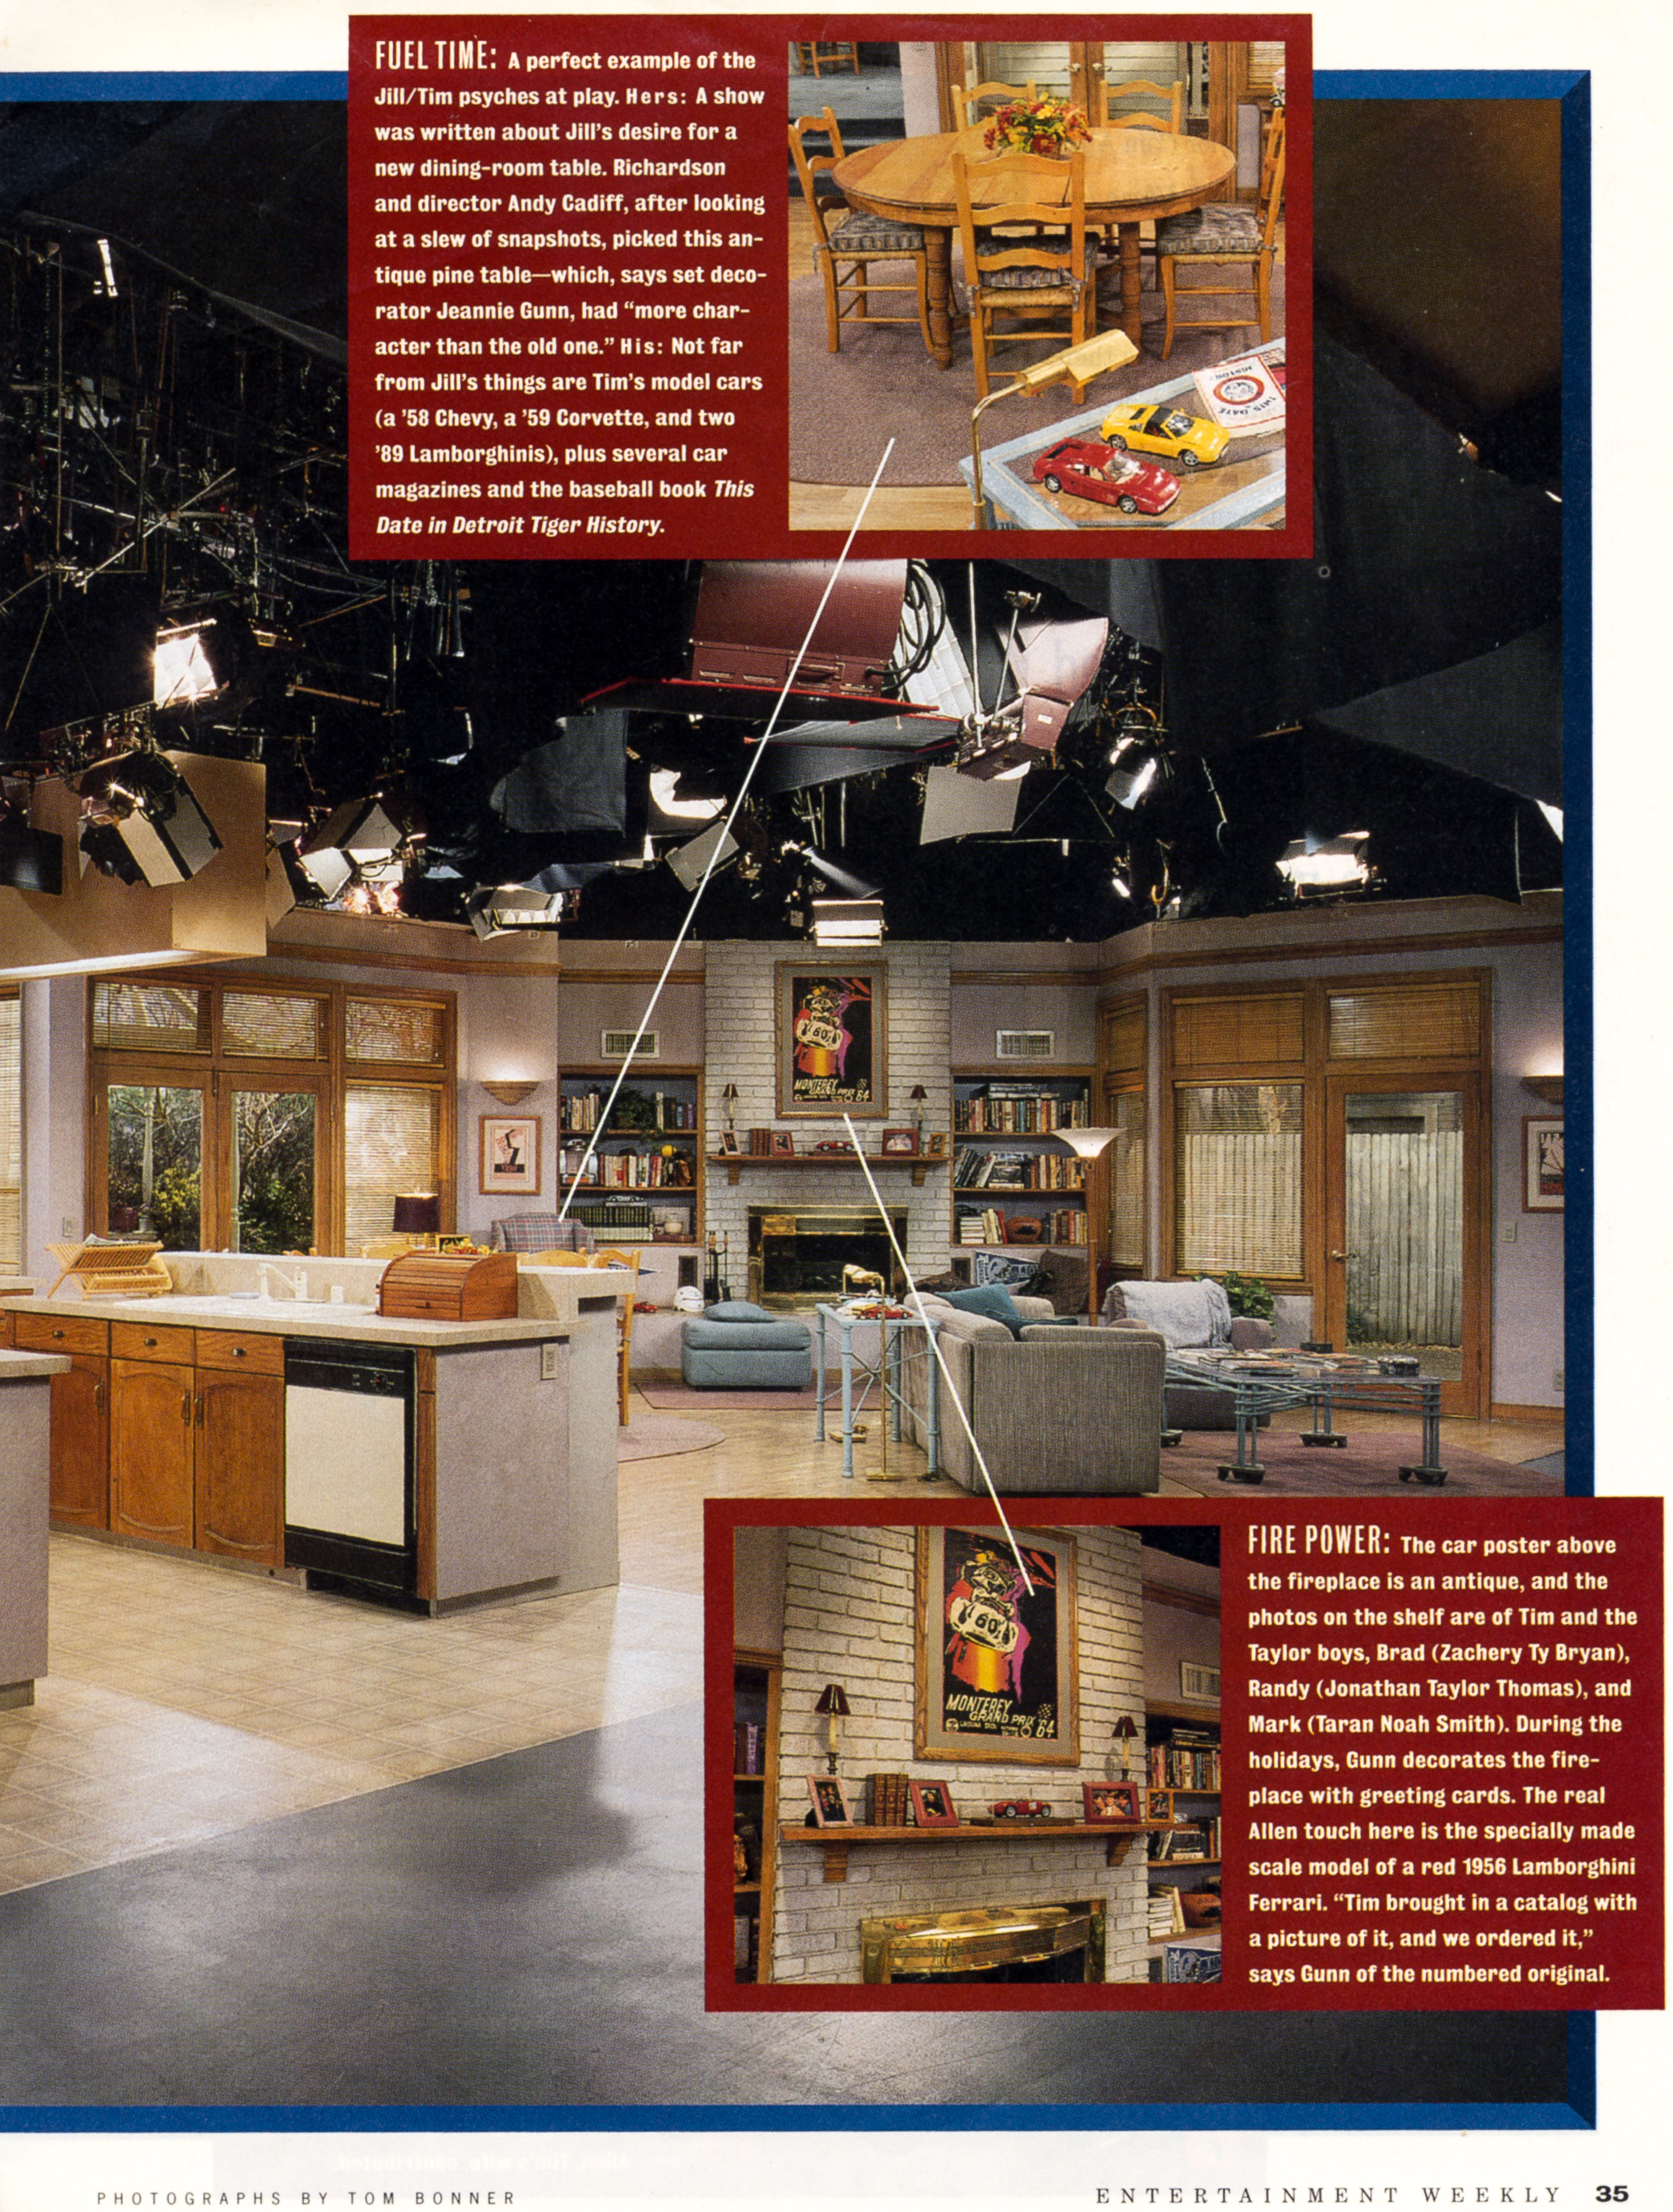 Cancel Which Membership >> Entertainment Weekly behind the scenes of Home Improvement